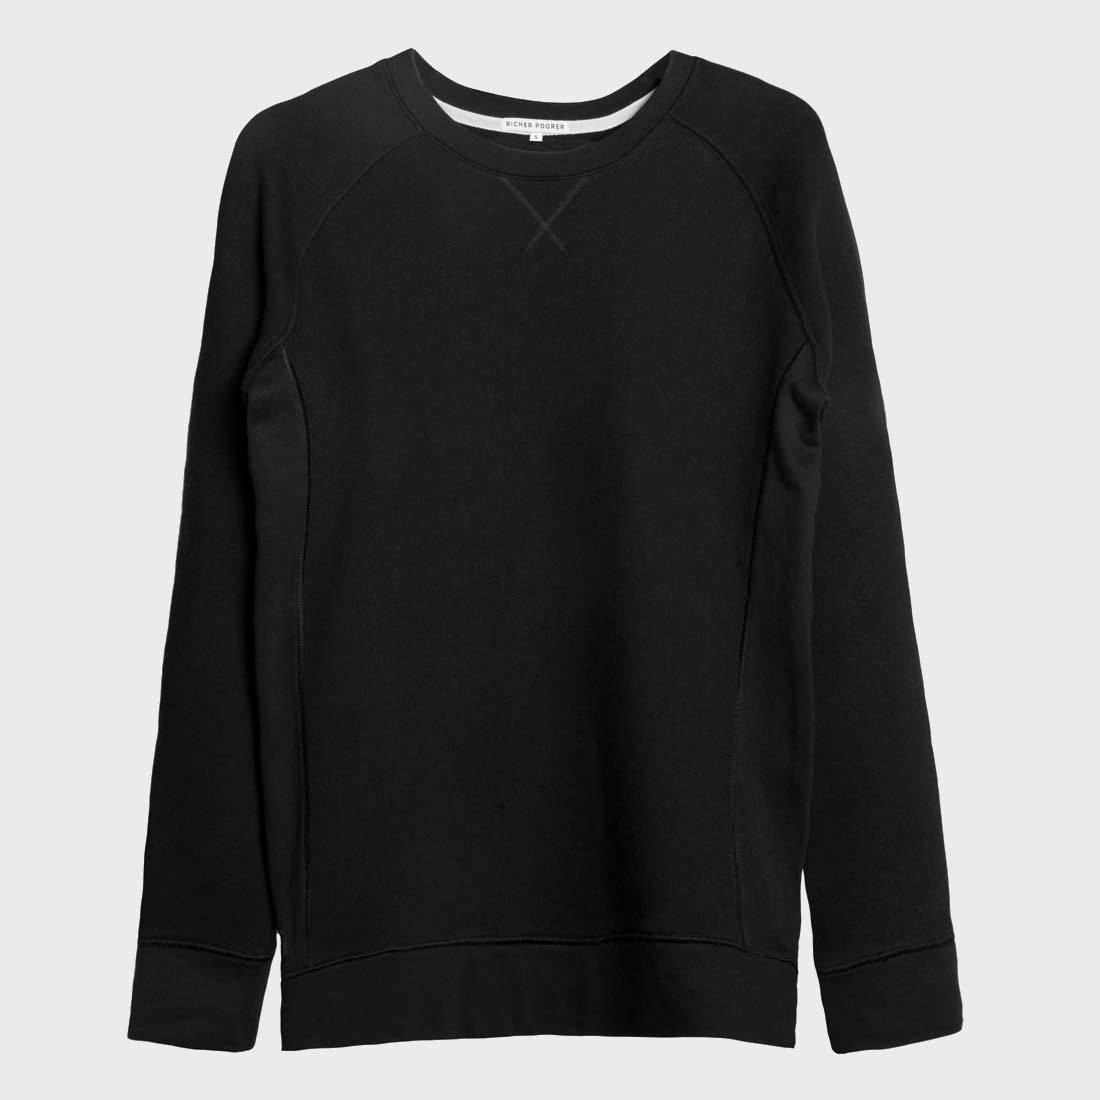 Richer Poorer Sweatshirt Black